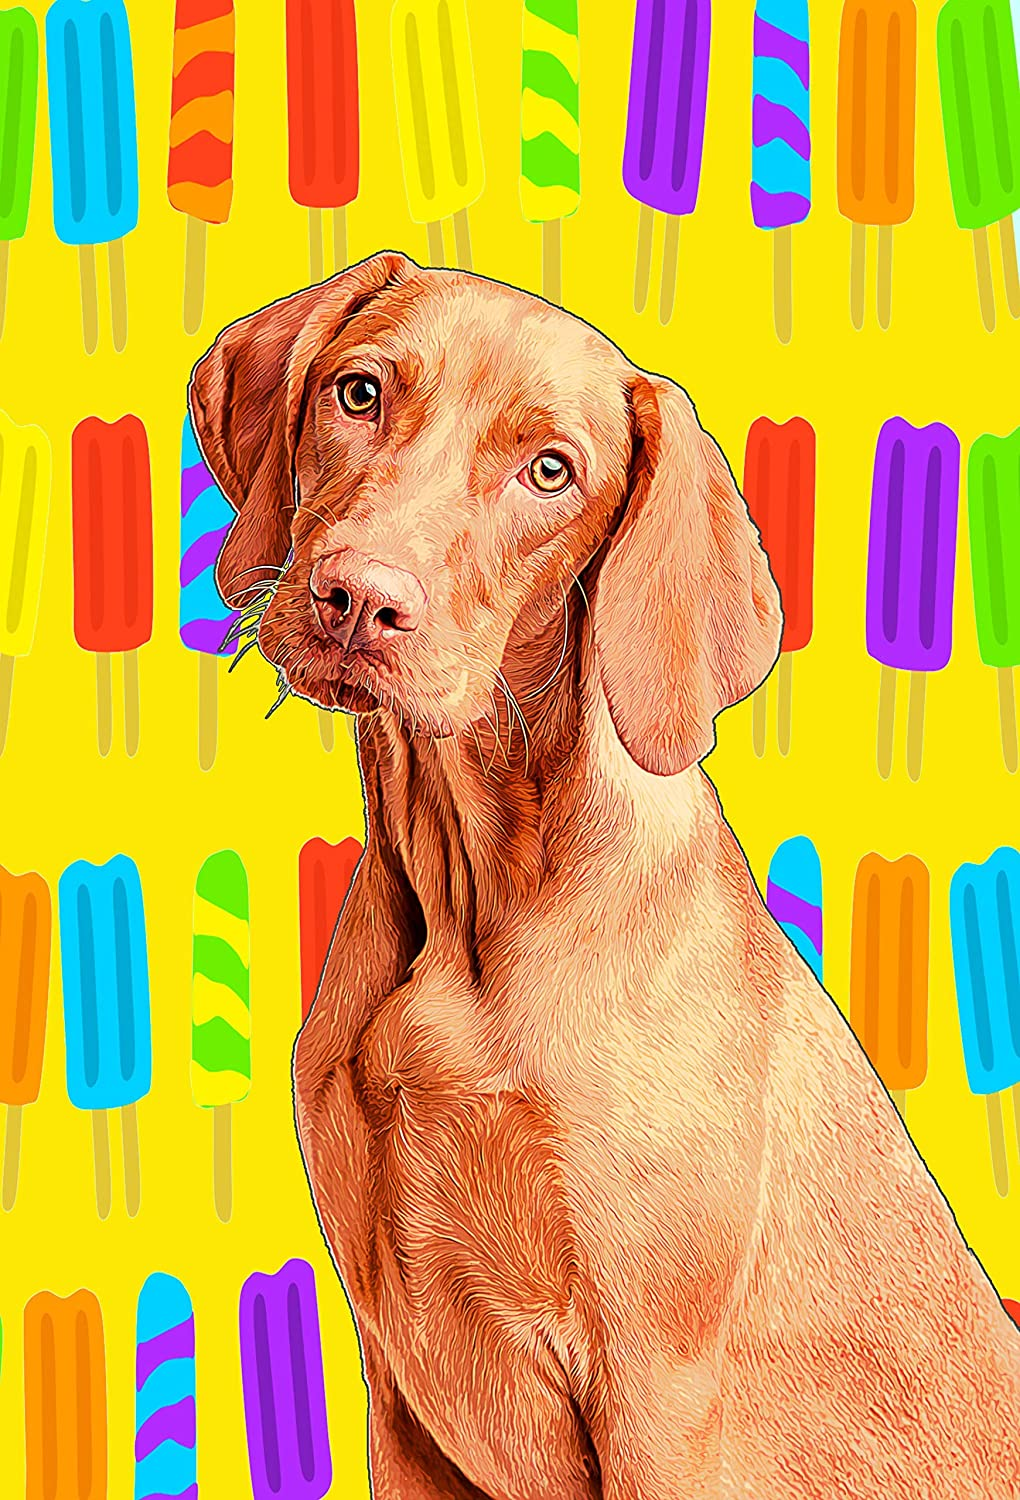 936aebba828b Dog Mom Gifts Customized Pet Portrait - Custom Pet Portrait for Dog Dad -  Wrapped Canvas Pop Art Print of YOUR Fur Baby - Dog Paintings Office Decor  Wall ...